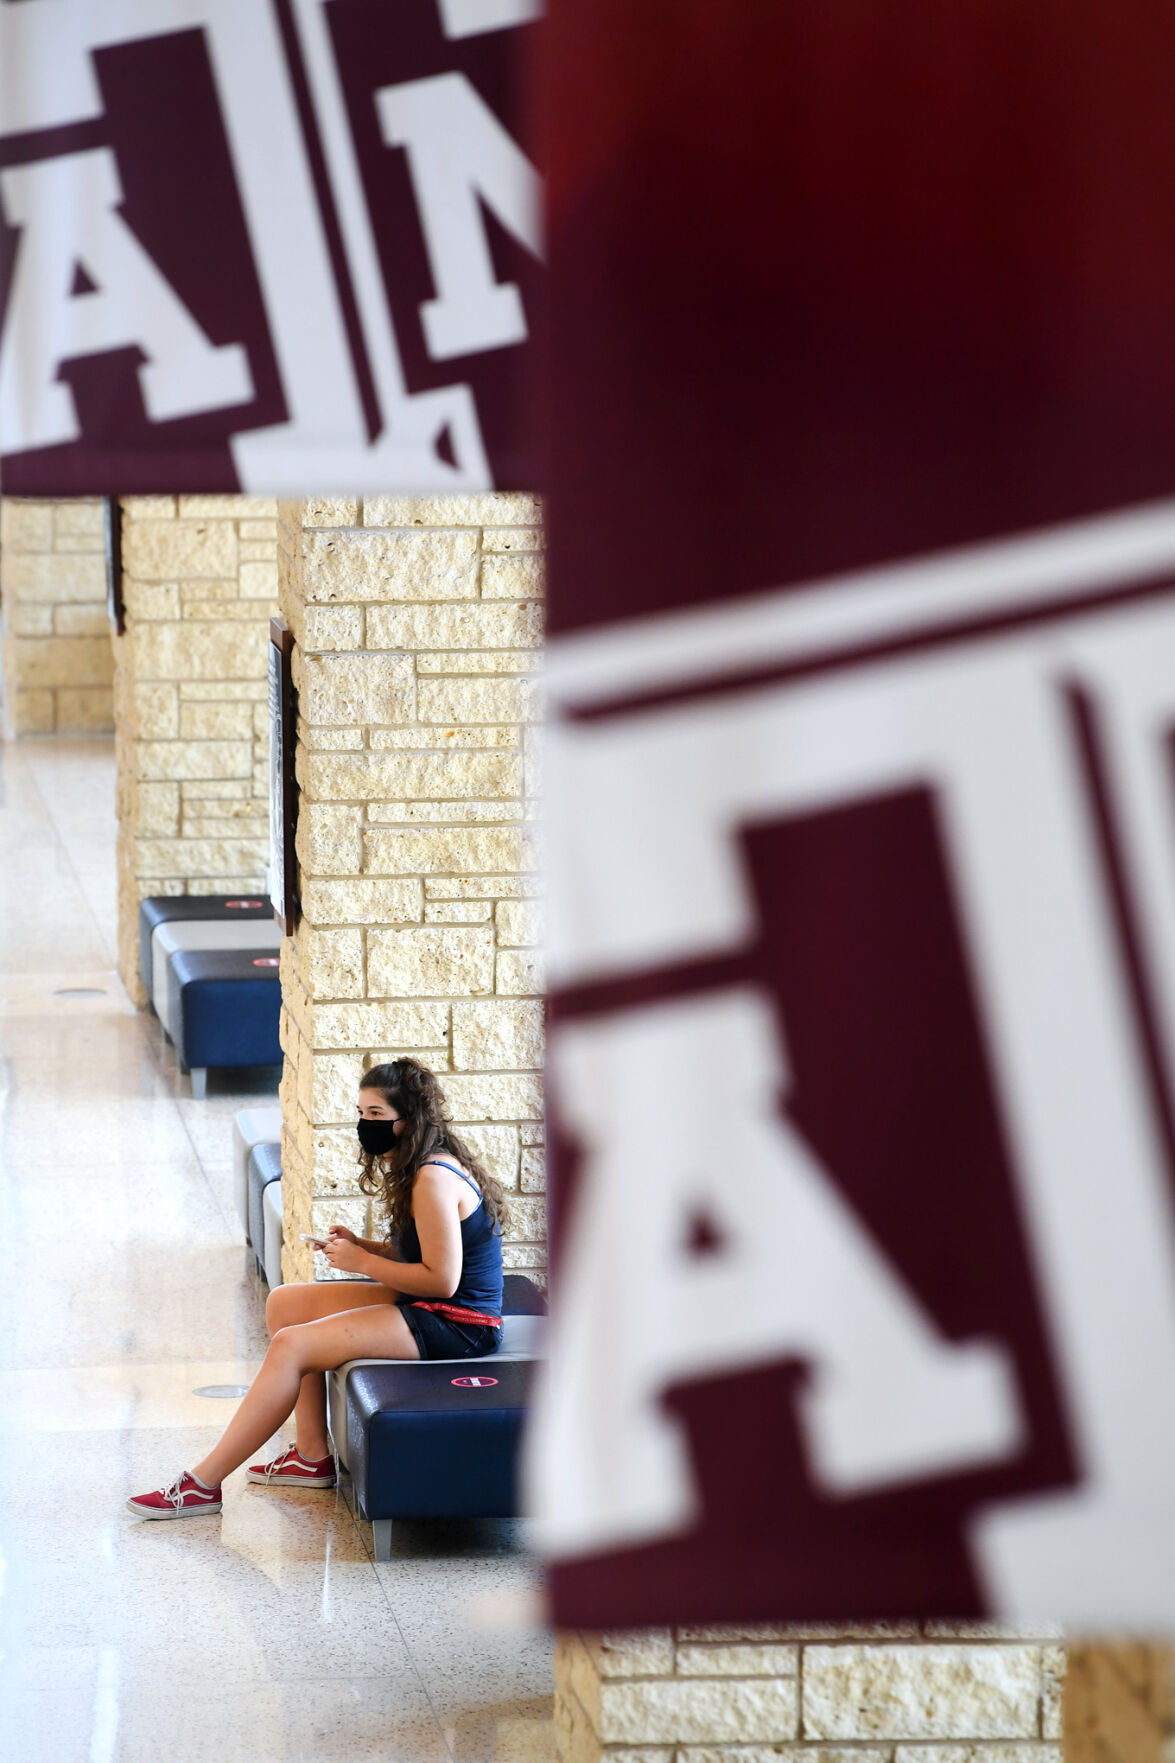 Classrooms At Texas A M To Open To Thousands Wednesday Texas A M Theeagle Com